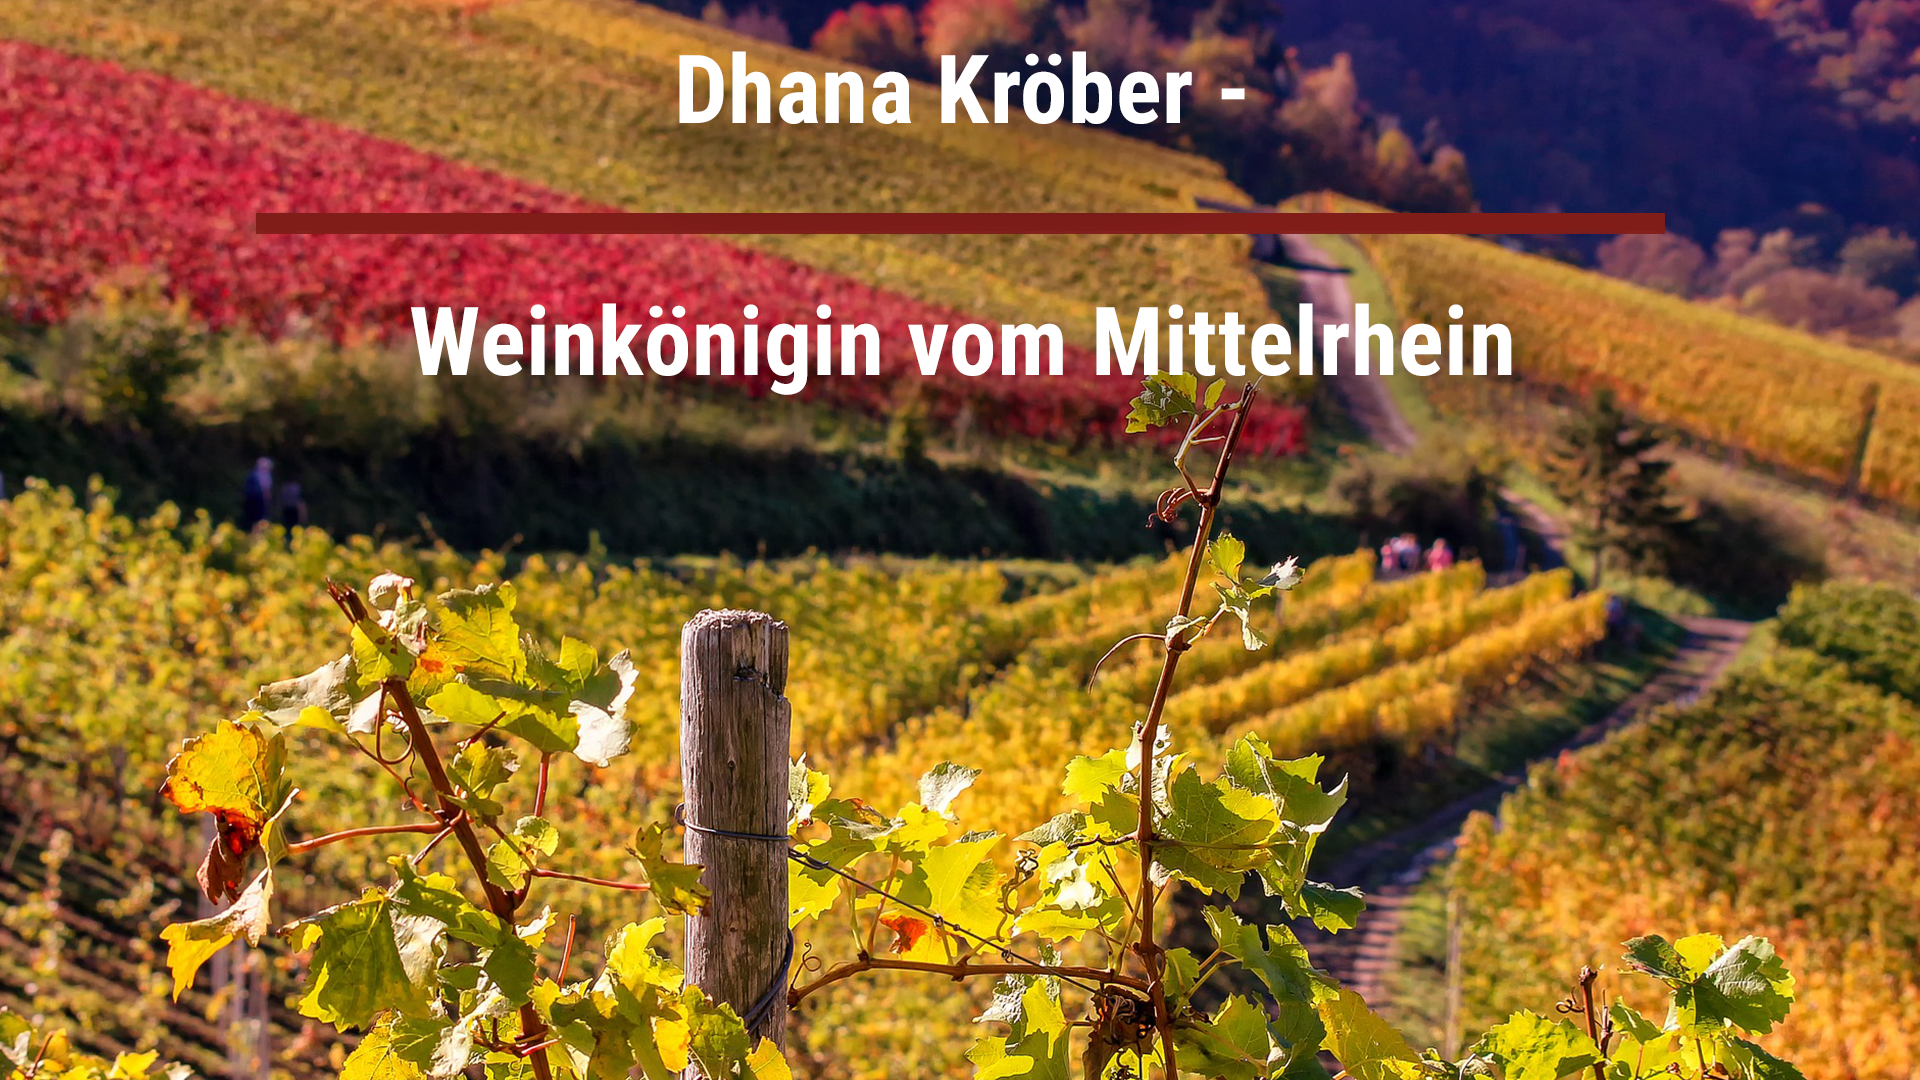 Dhana Kröber – Wine Queen from the Middle Rhine